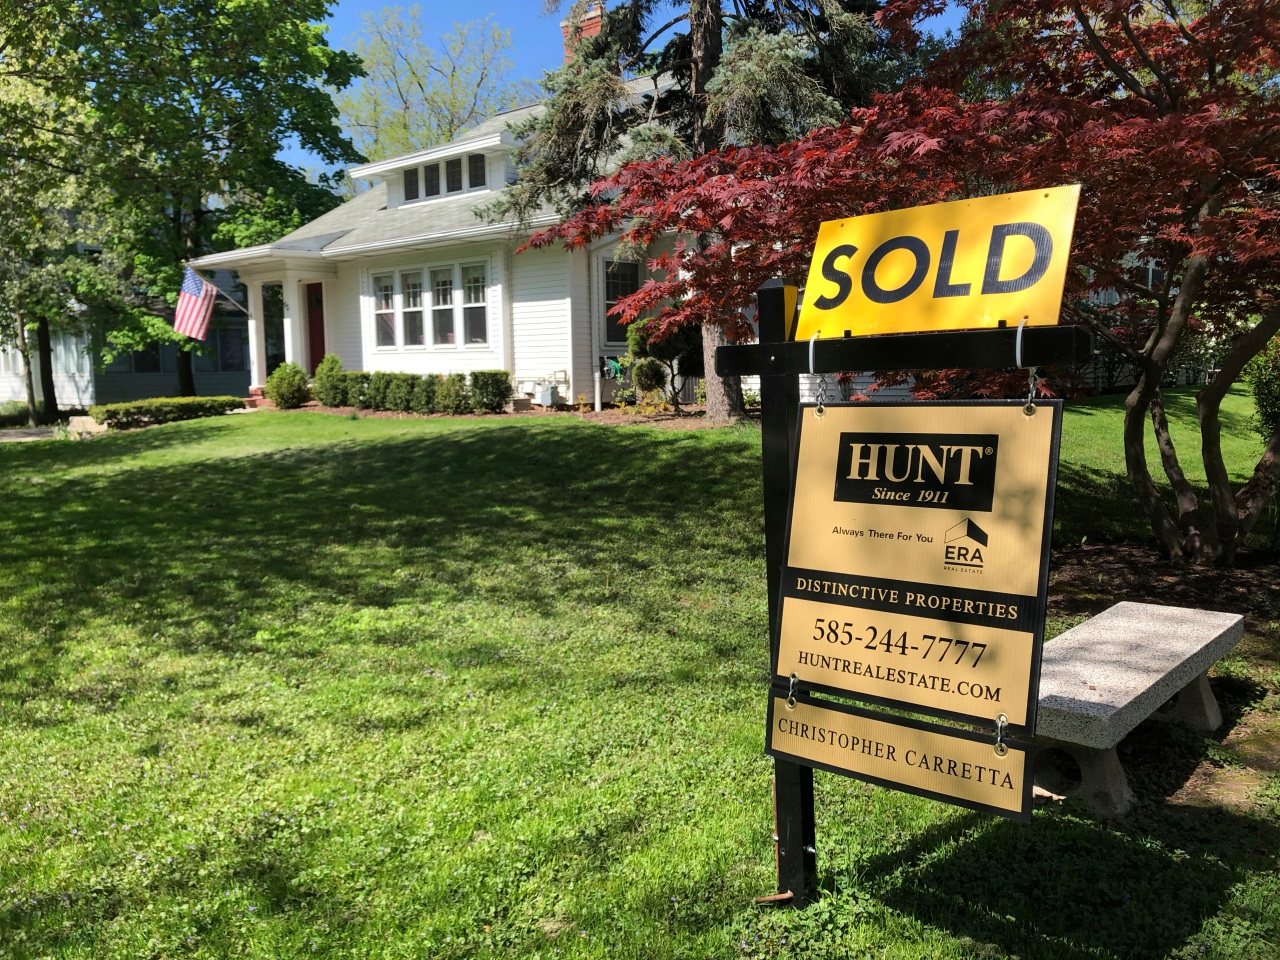 Housing market frenzy may have peaked: Sales see record late-spring drop